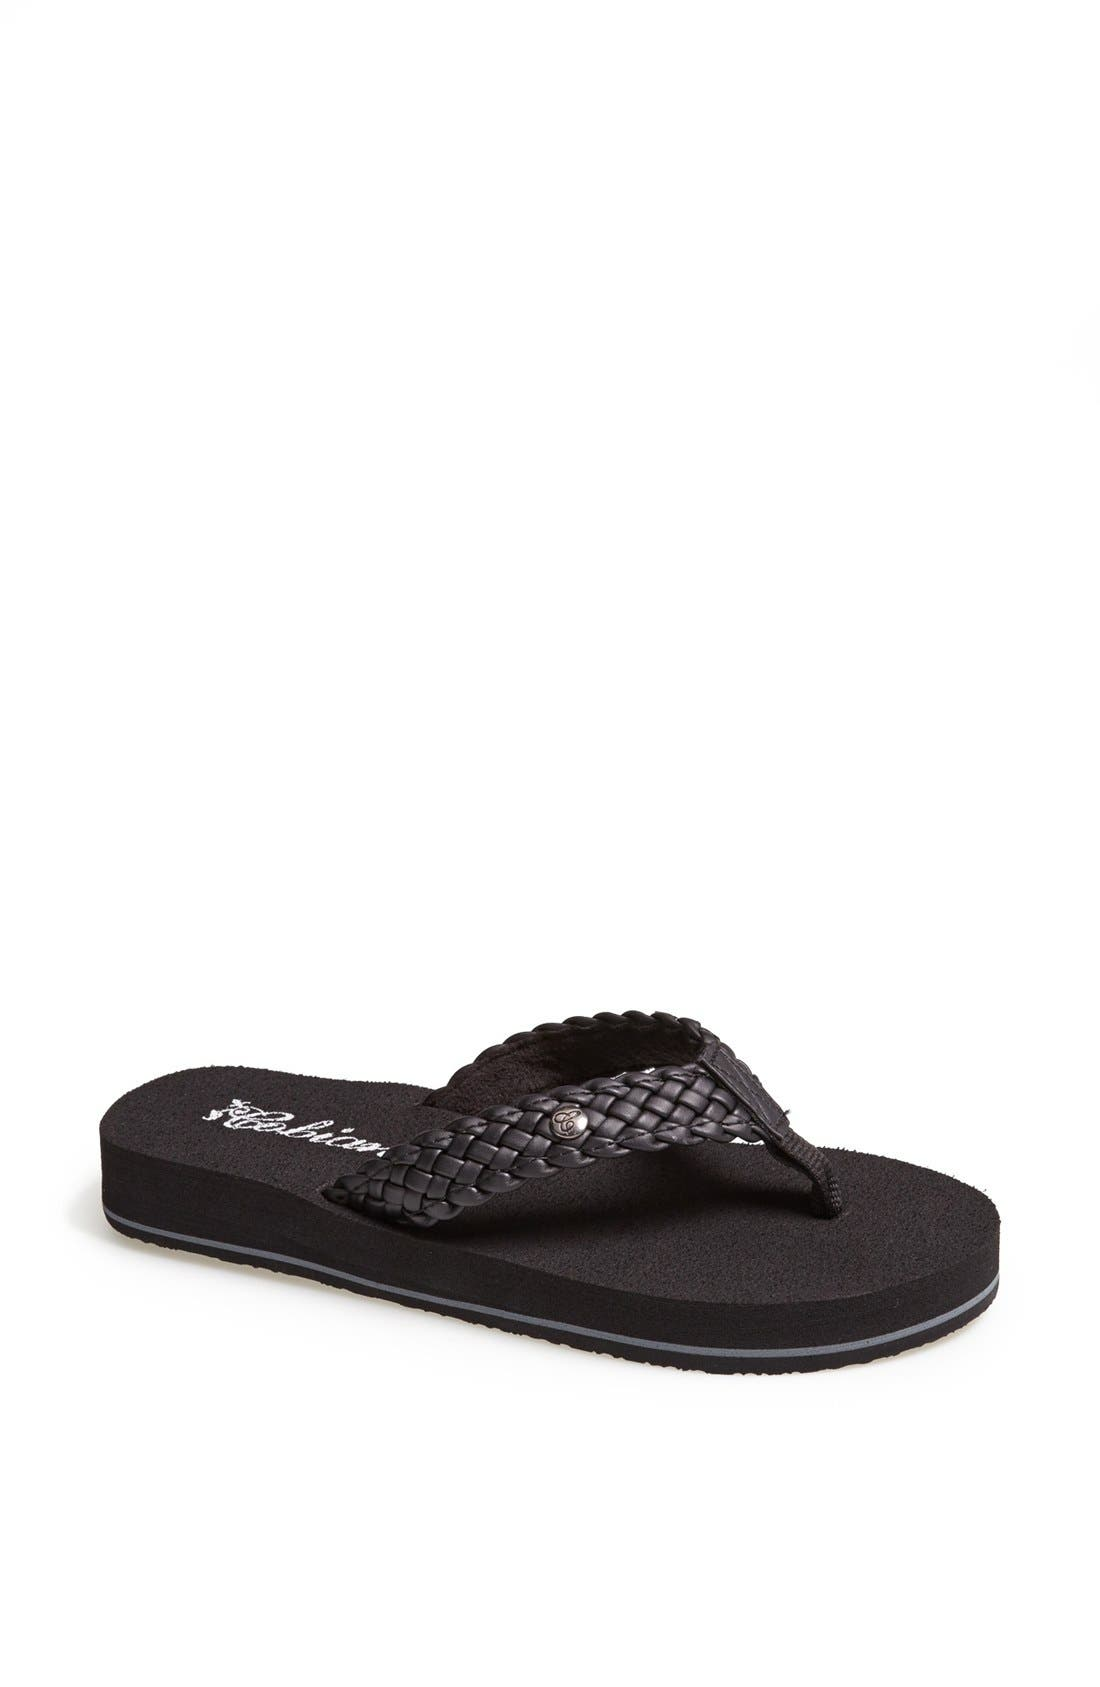 Alternate Image 1 Selected - Cobian 'Braided Bounce' Flip Flop